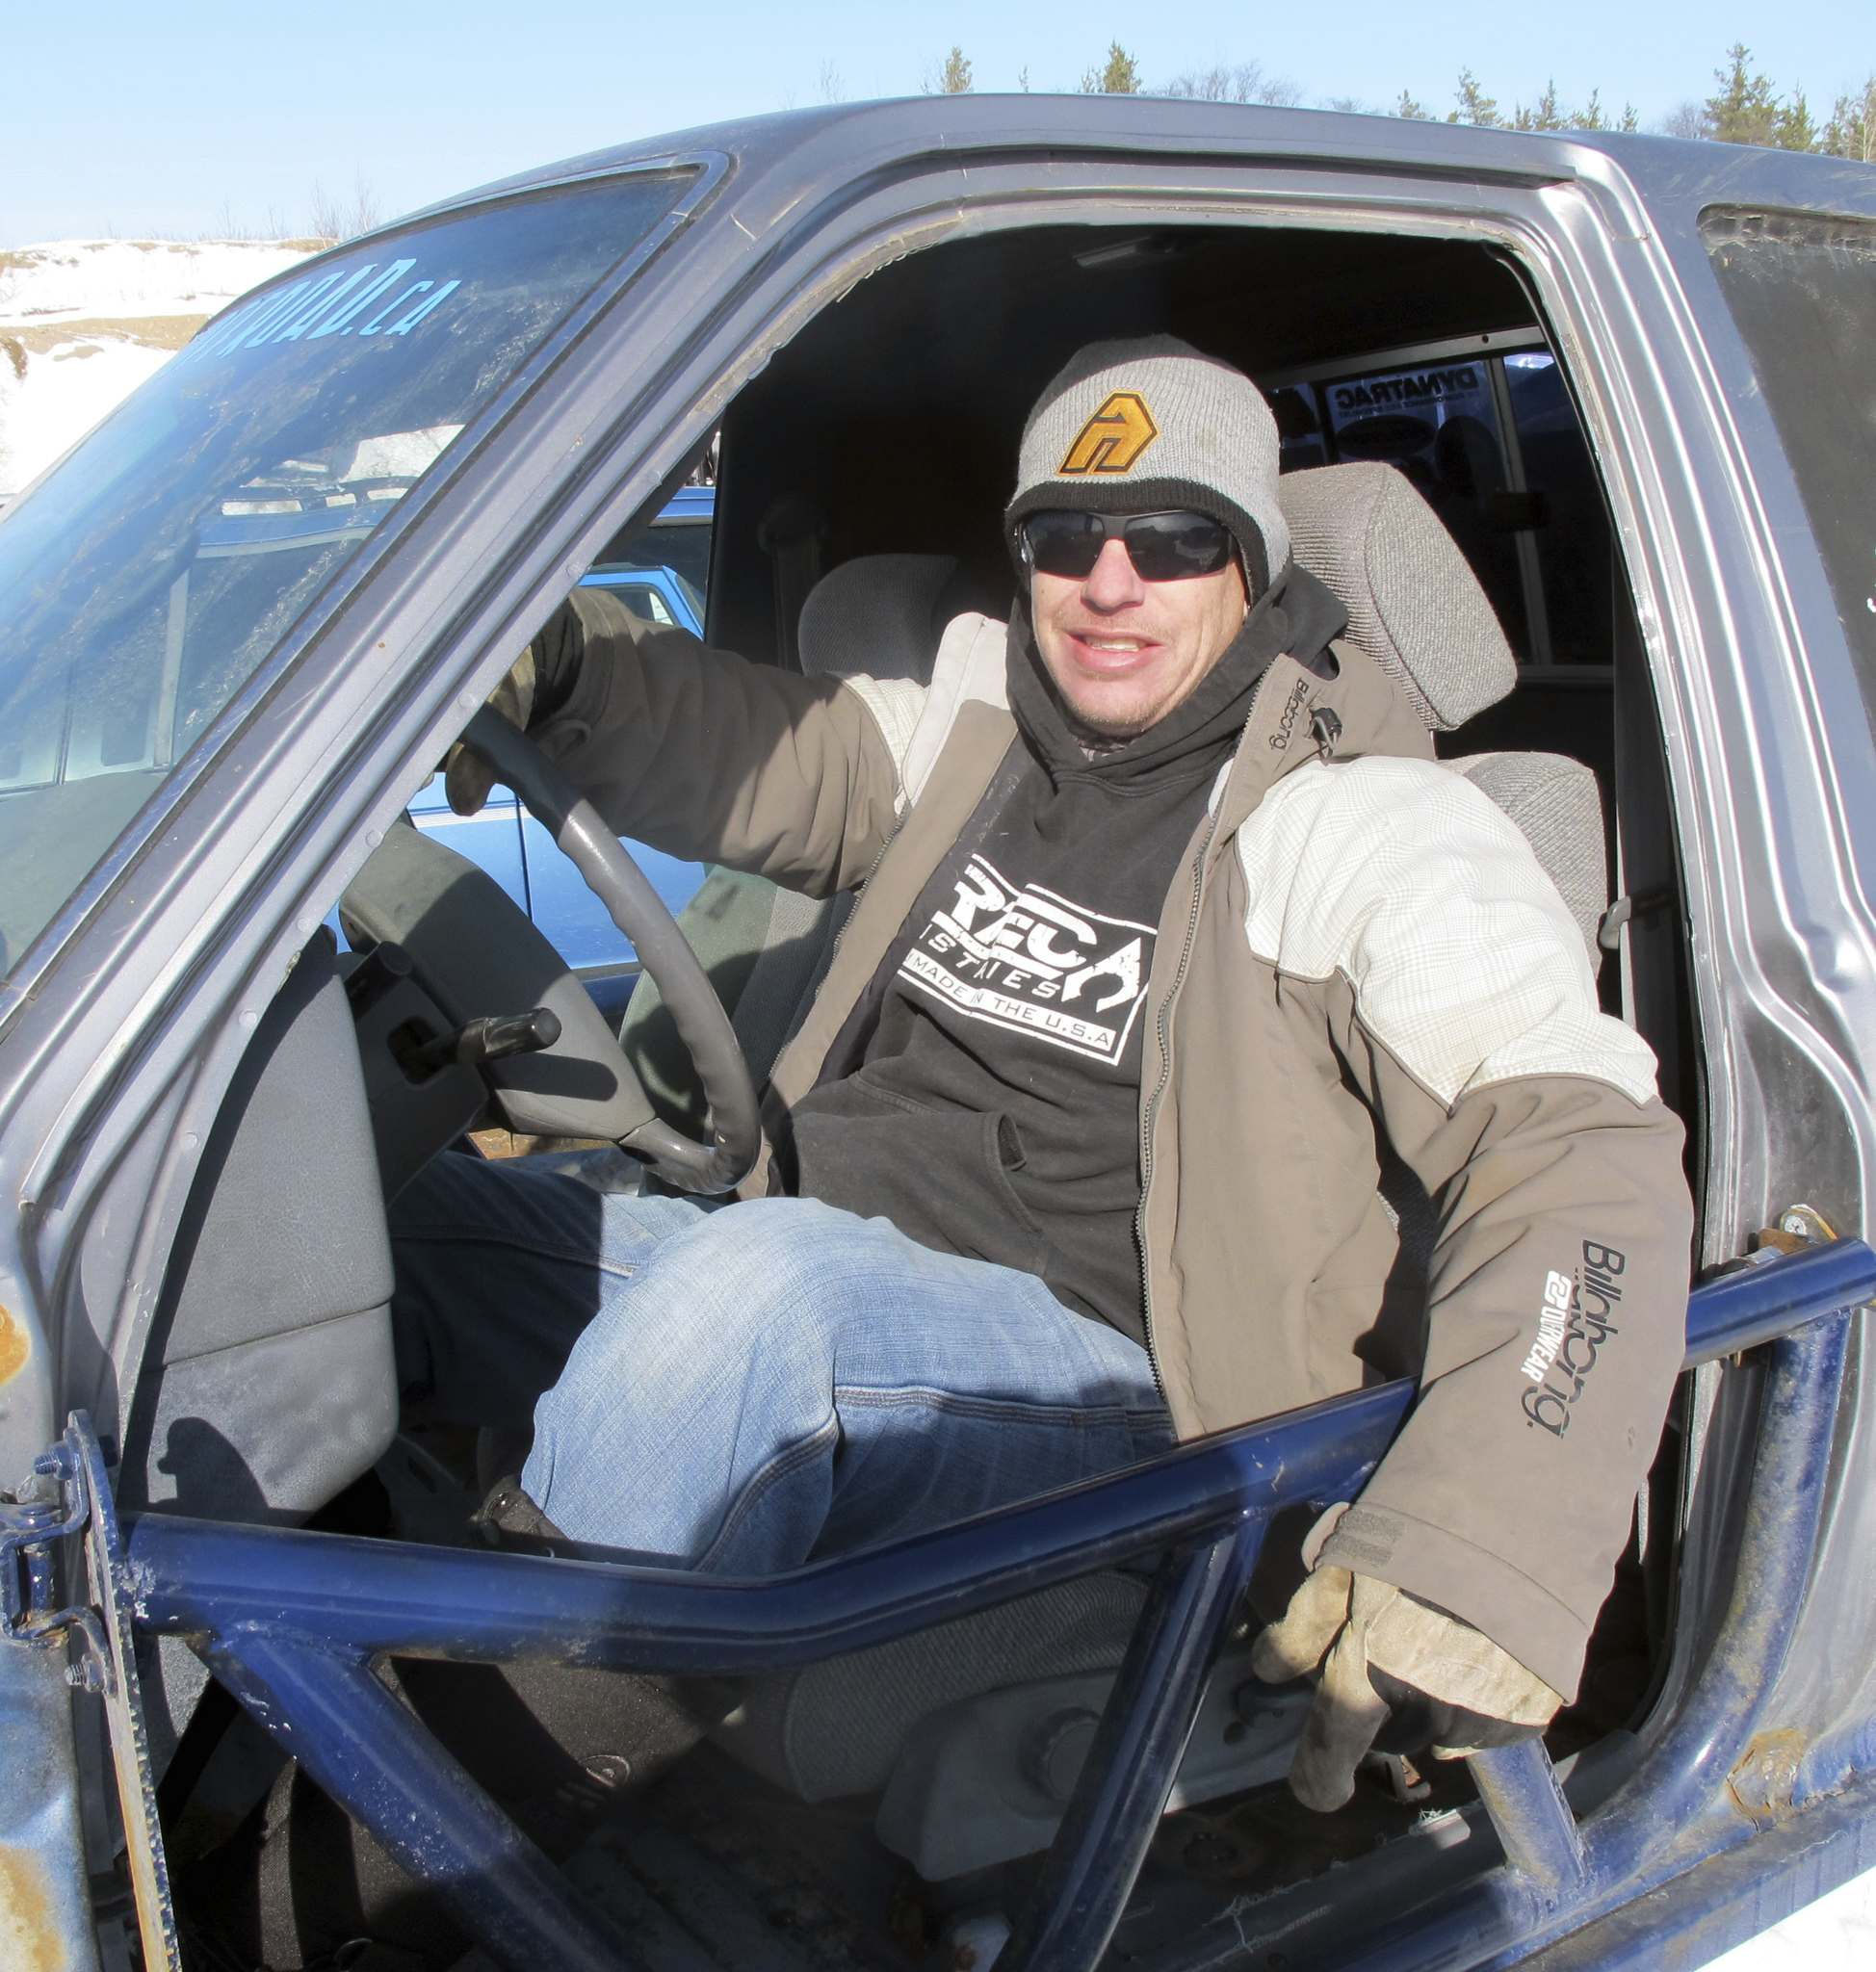 Willy Williamson / Winnipeg Free PressSteve Rempel, the main organizer of Manitoba Winter Mega Run, expects more than 500 vehicles and several thousand off-road enthusiasts will attend the annual event.